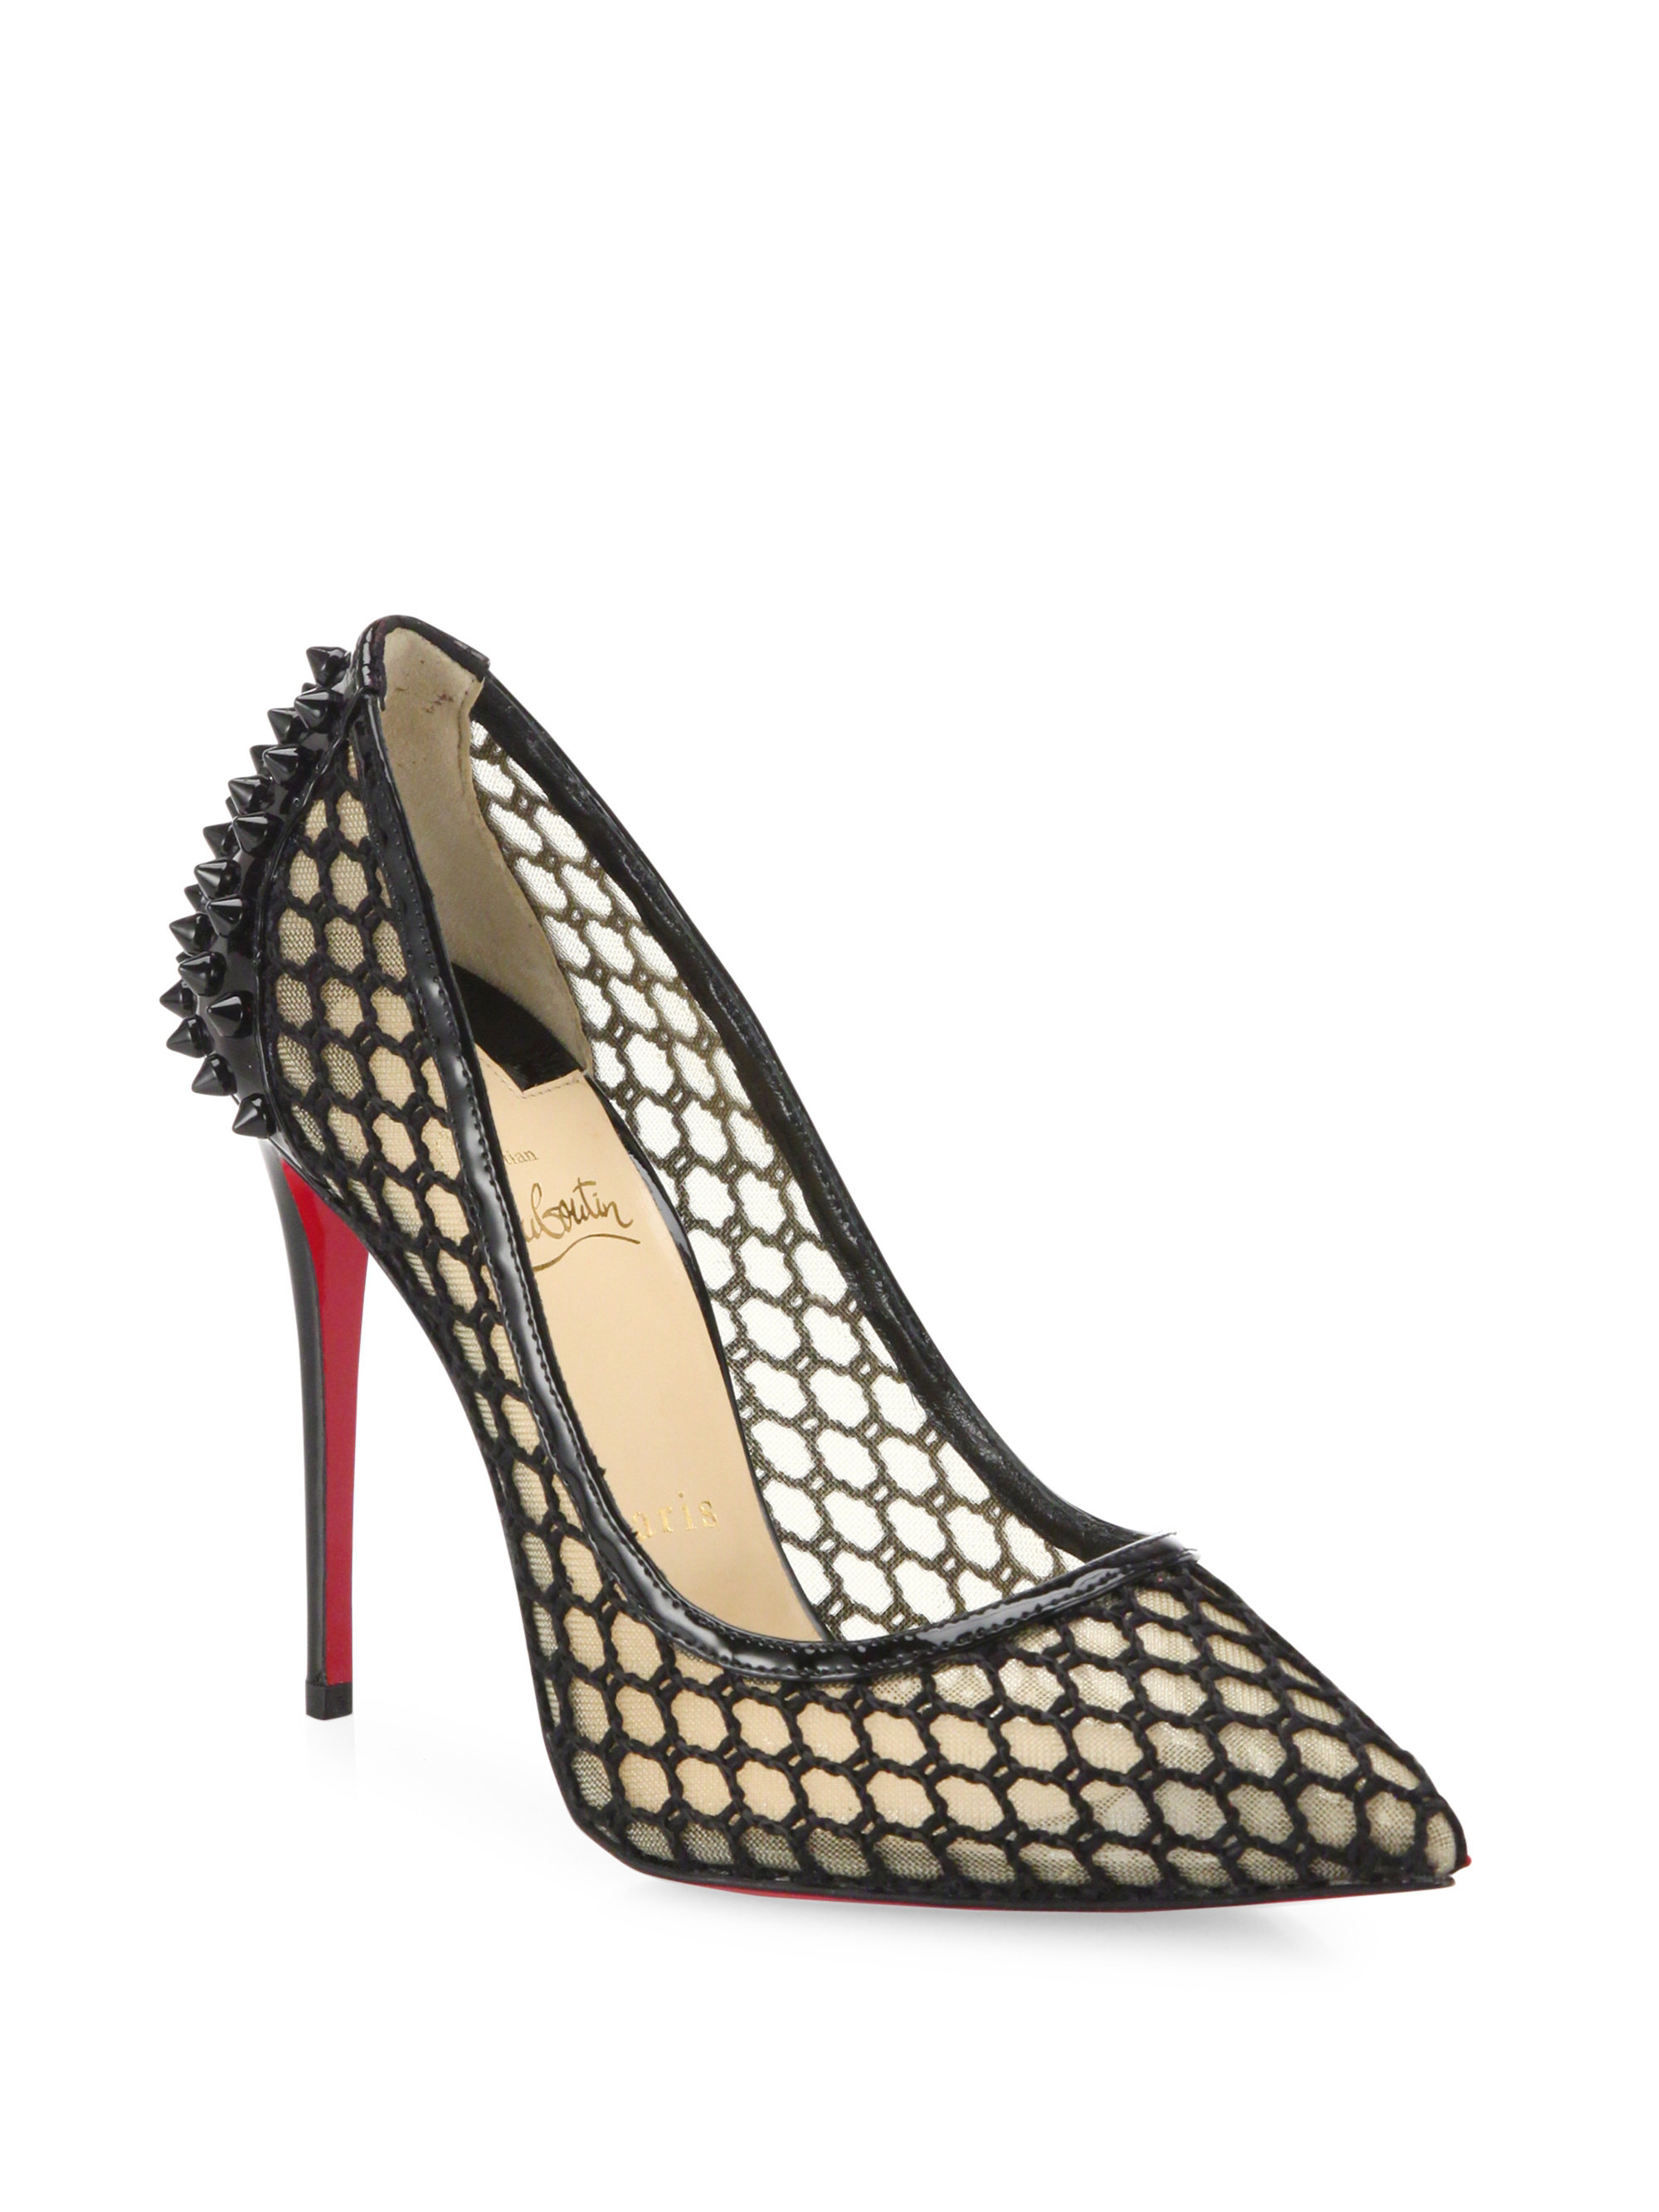 Christian louboutin Guni Patent-trim Spiked Mesh Pumps in Black | Lyst